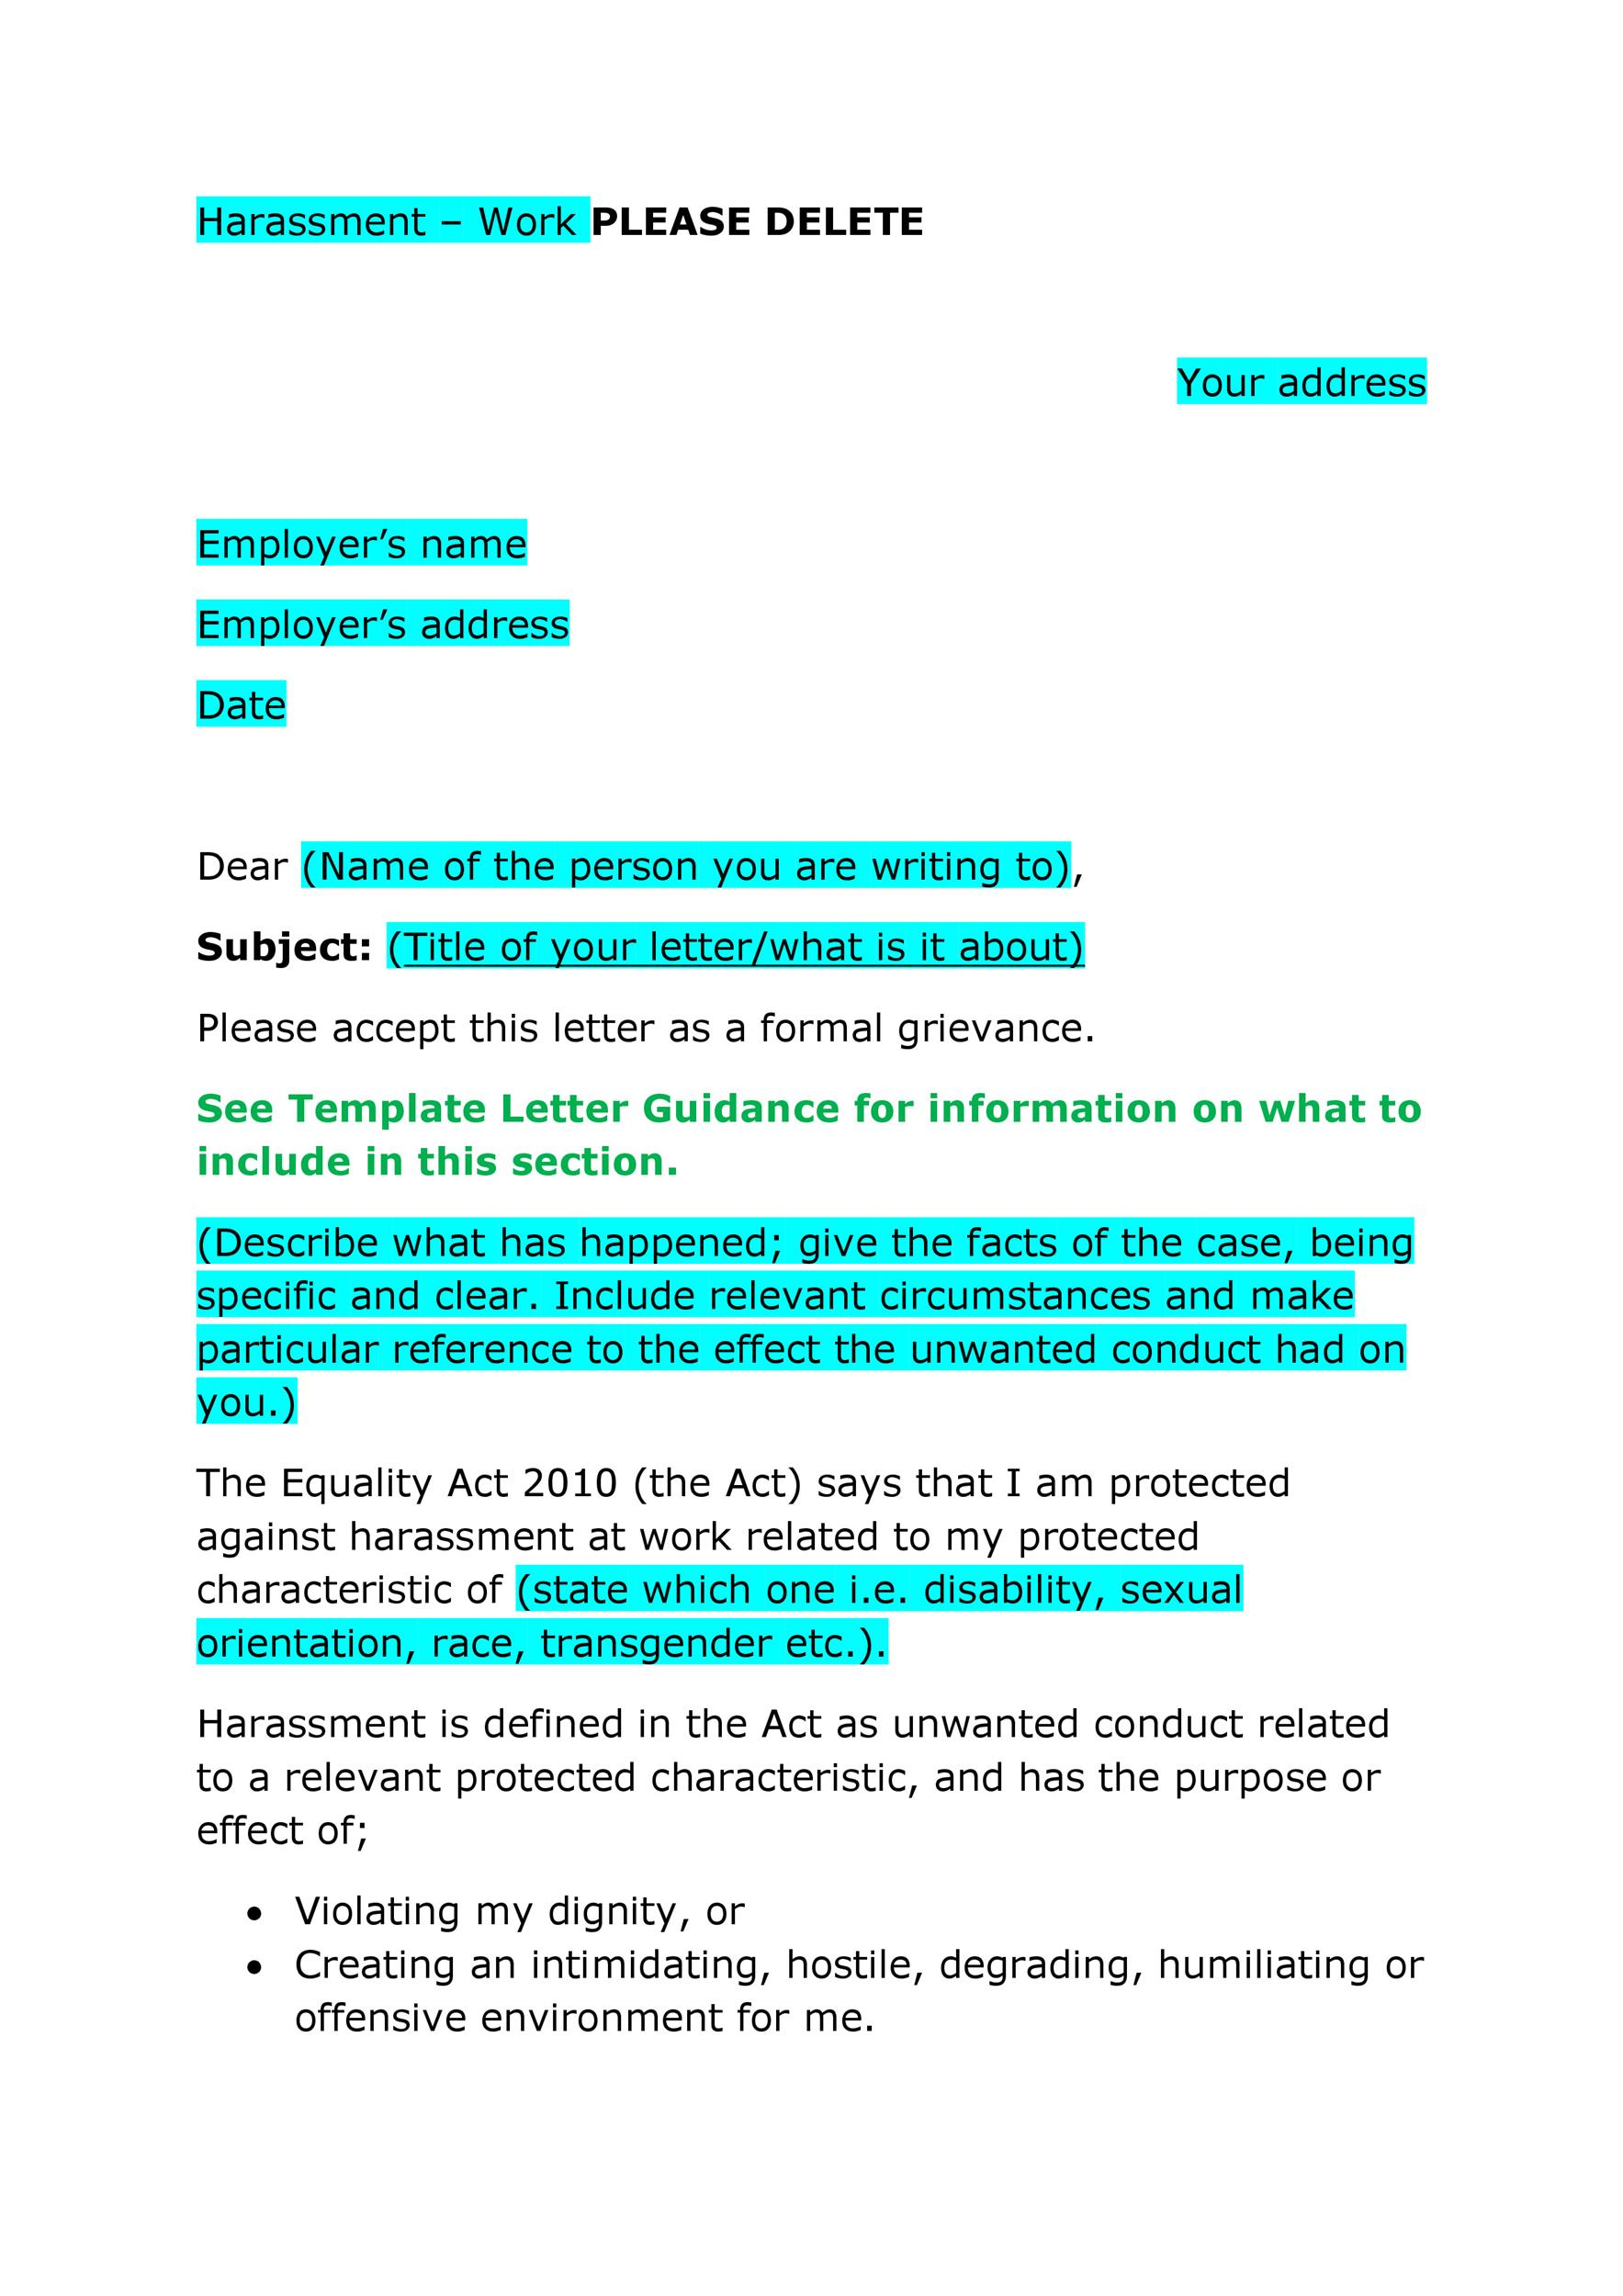 Sample Letter Of Workplace Harassment from templatelab.com